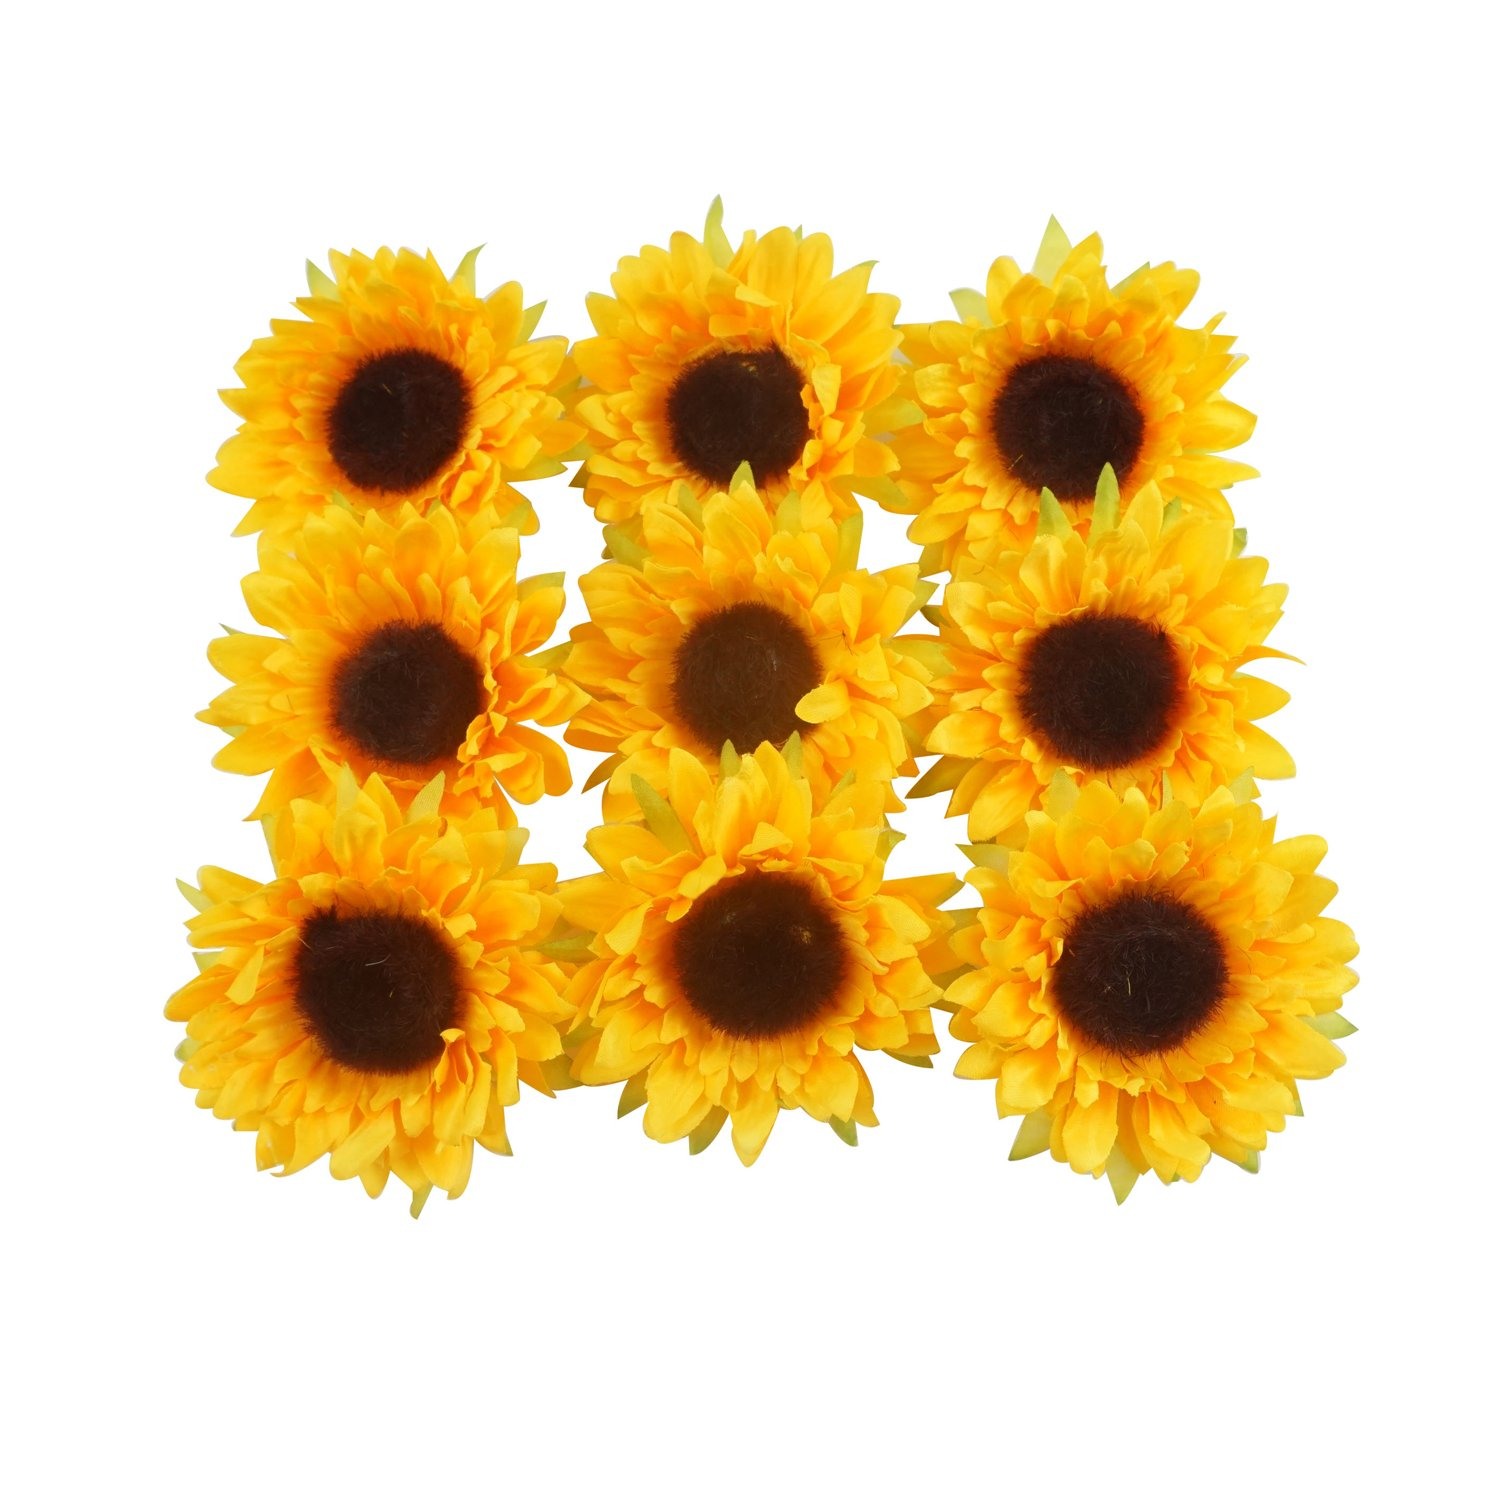 Colorfulife Artificial Silk 3.5 Sunflower Flower Head for Wedding Home Party Decoration Hair Clip Wreath Decorative (24) angelovesmile